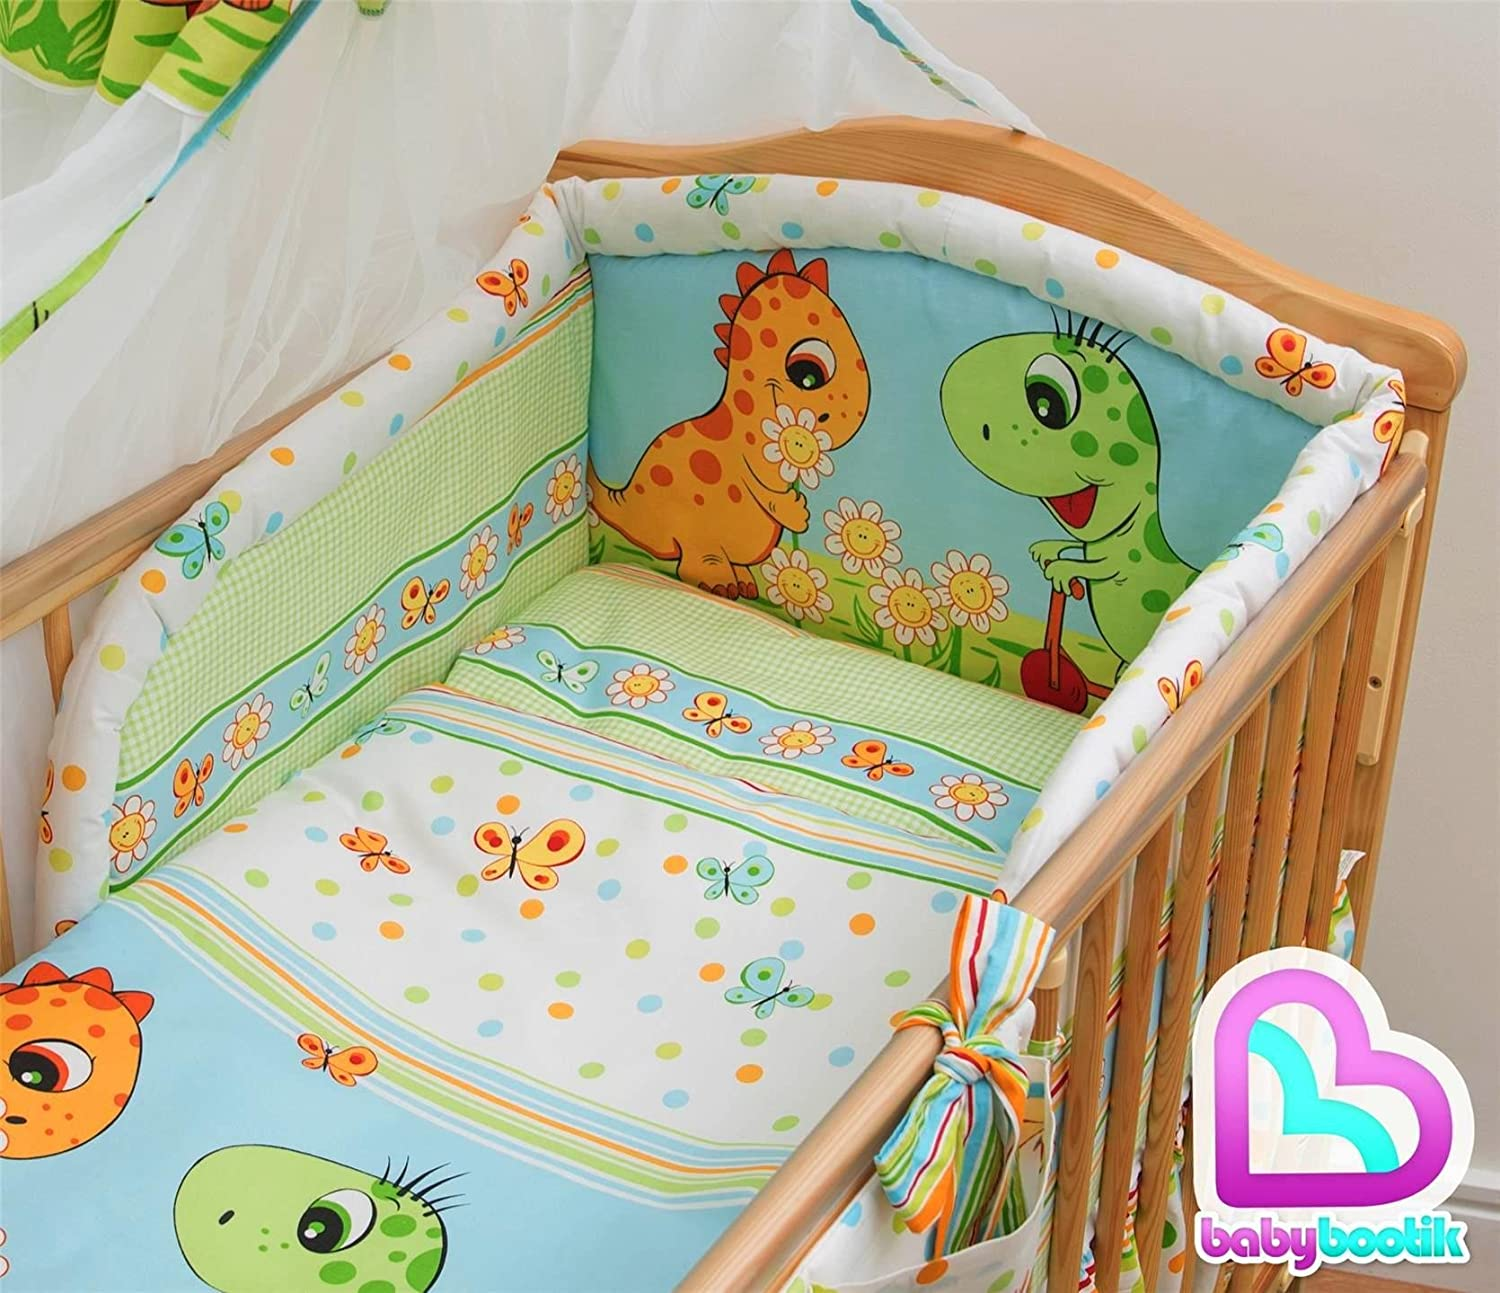 Pattern 9 6 Pcs Baby Cot Bed Bedding with Padded Thick Bumper /& Fitted Sheet 140x70 cm